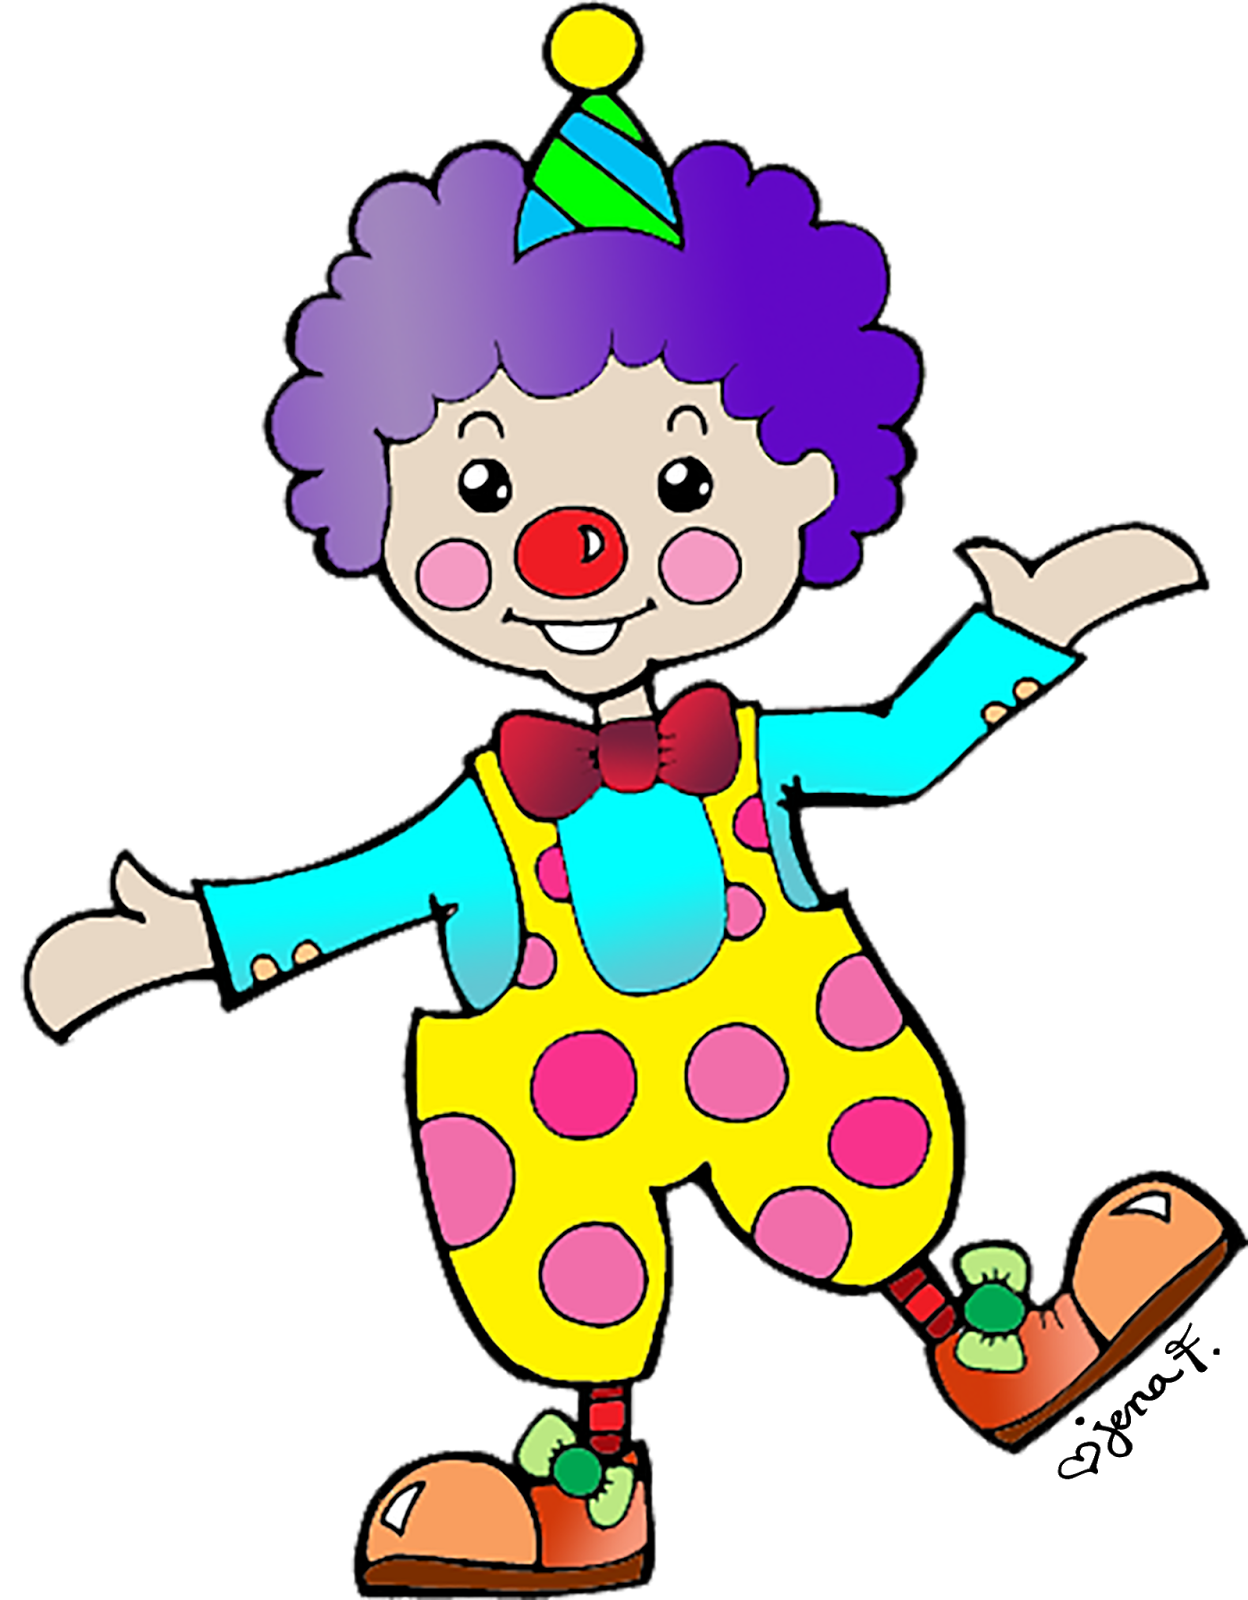 Joker clipart for kid #1